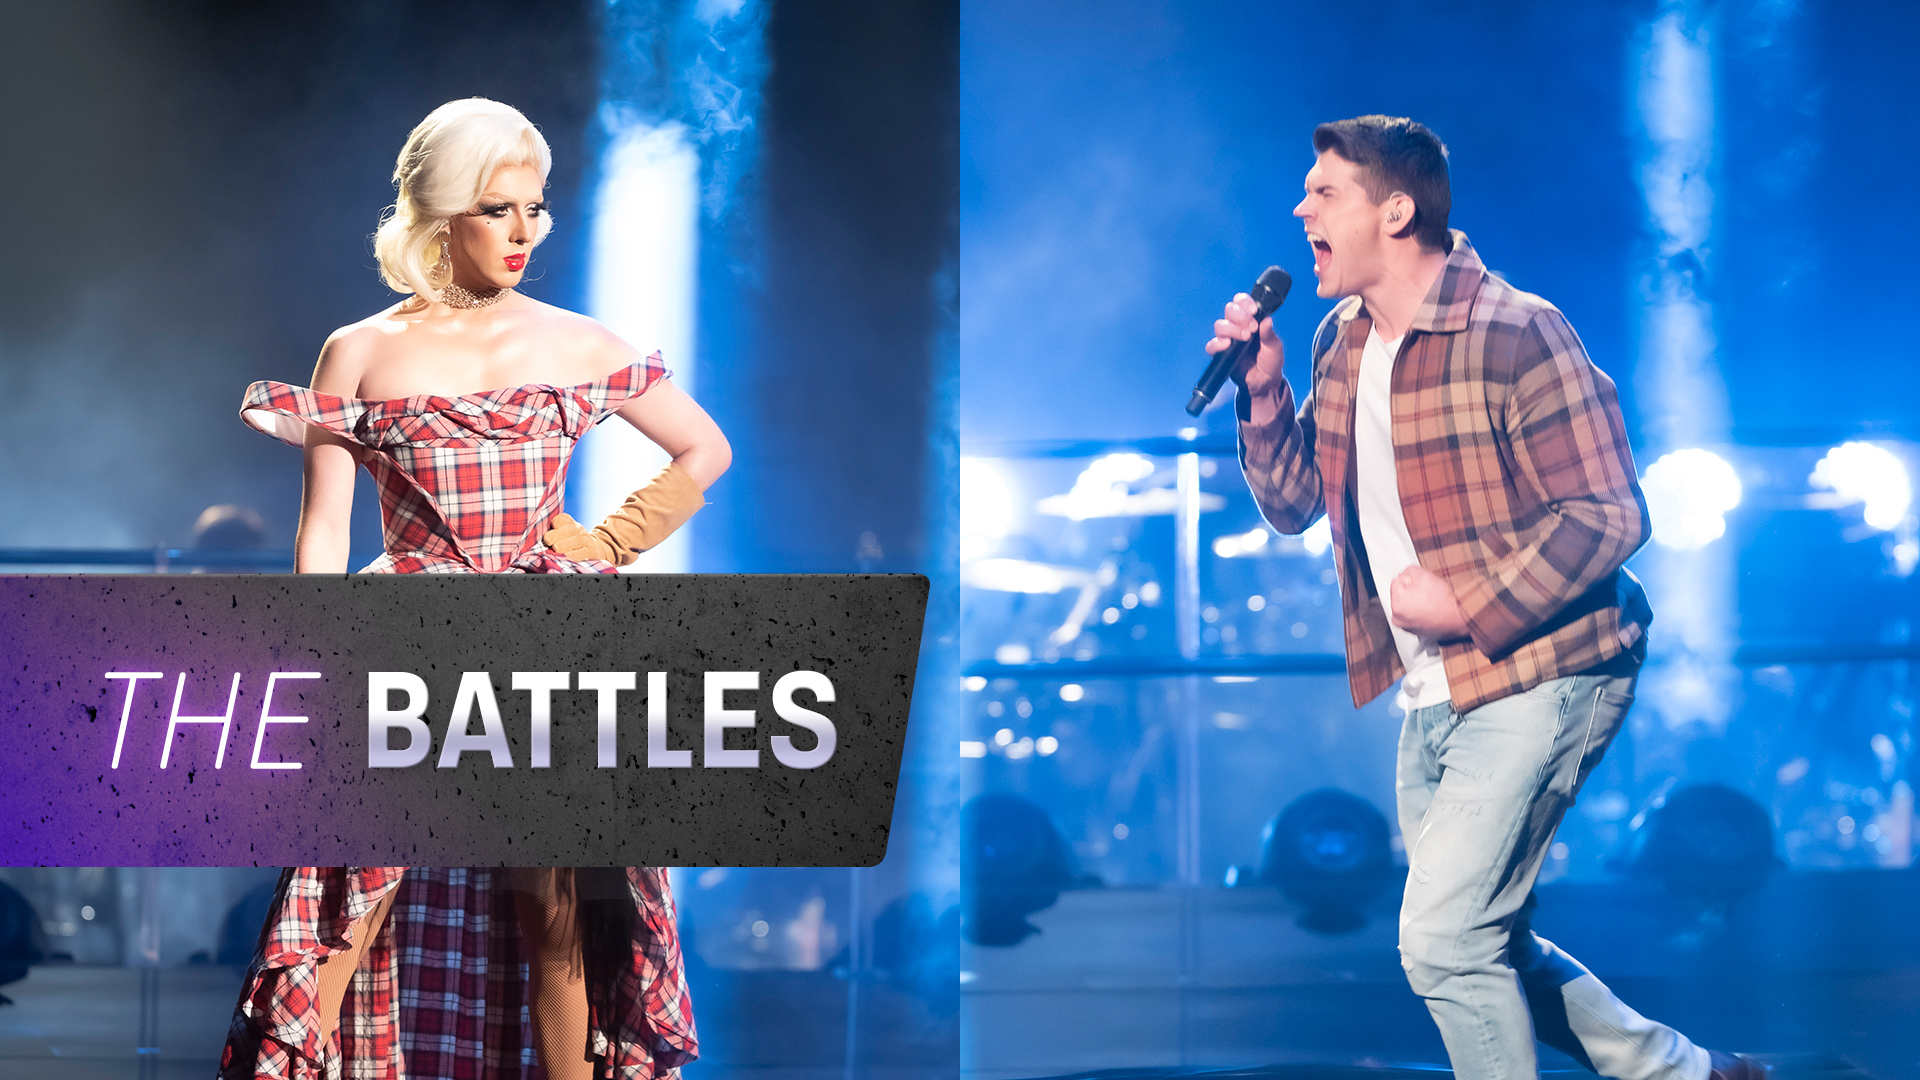 The Battles: Jimi the Kween vs Josh 'Love is a Battlefield'